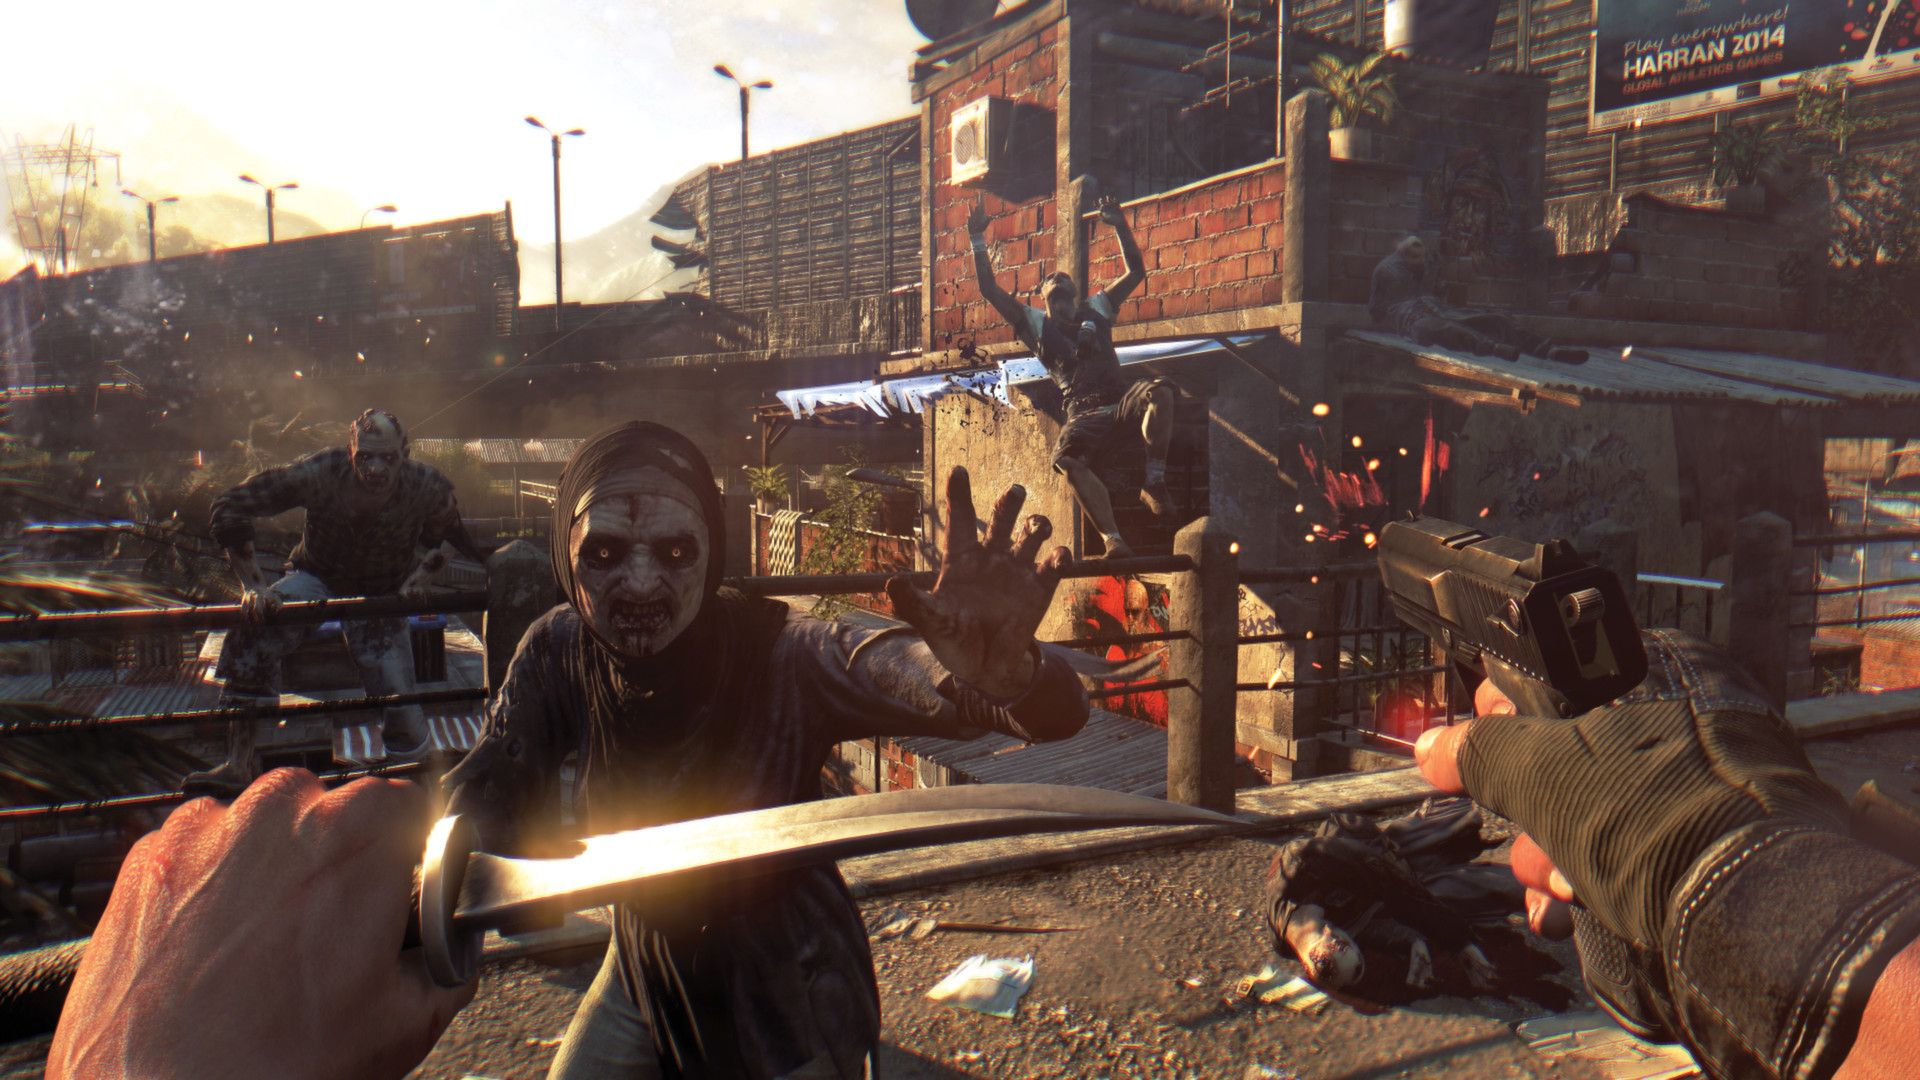 The Ps4 Is Back On Top And Dying Light Is Bright In The January 2015